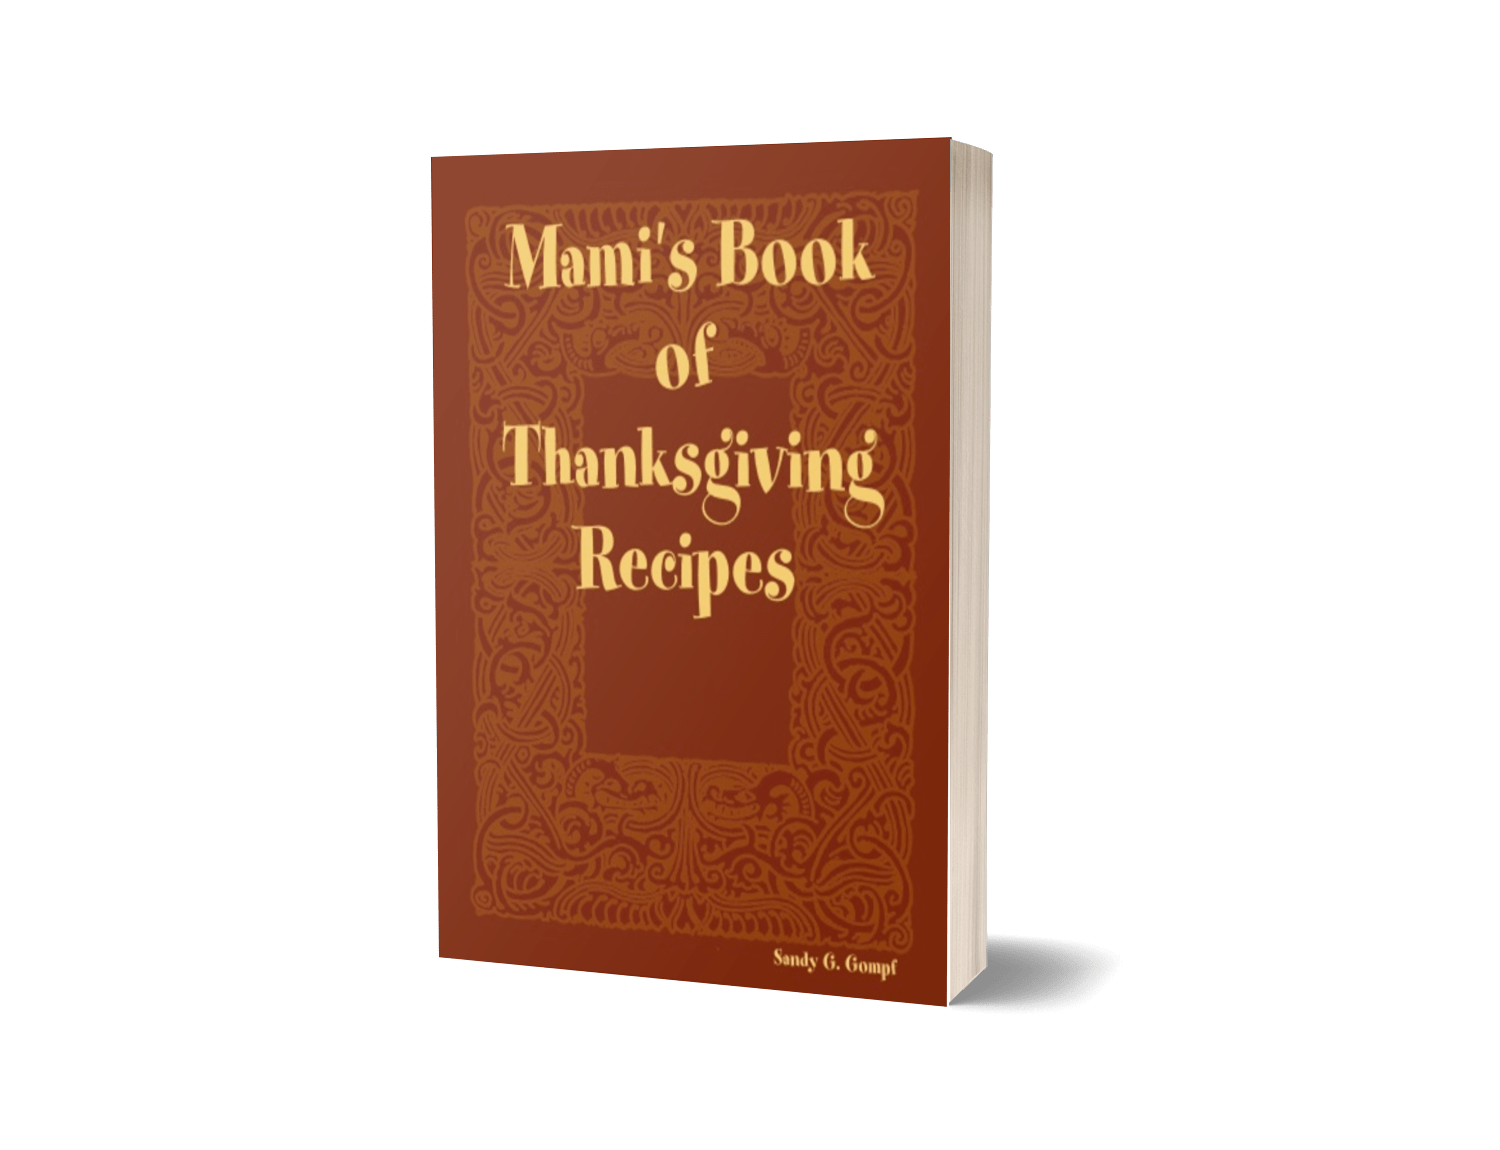 Mami's Book of Thanksgiving Recipes